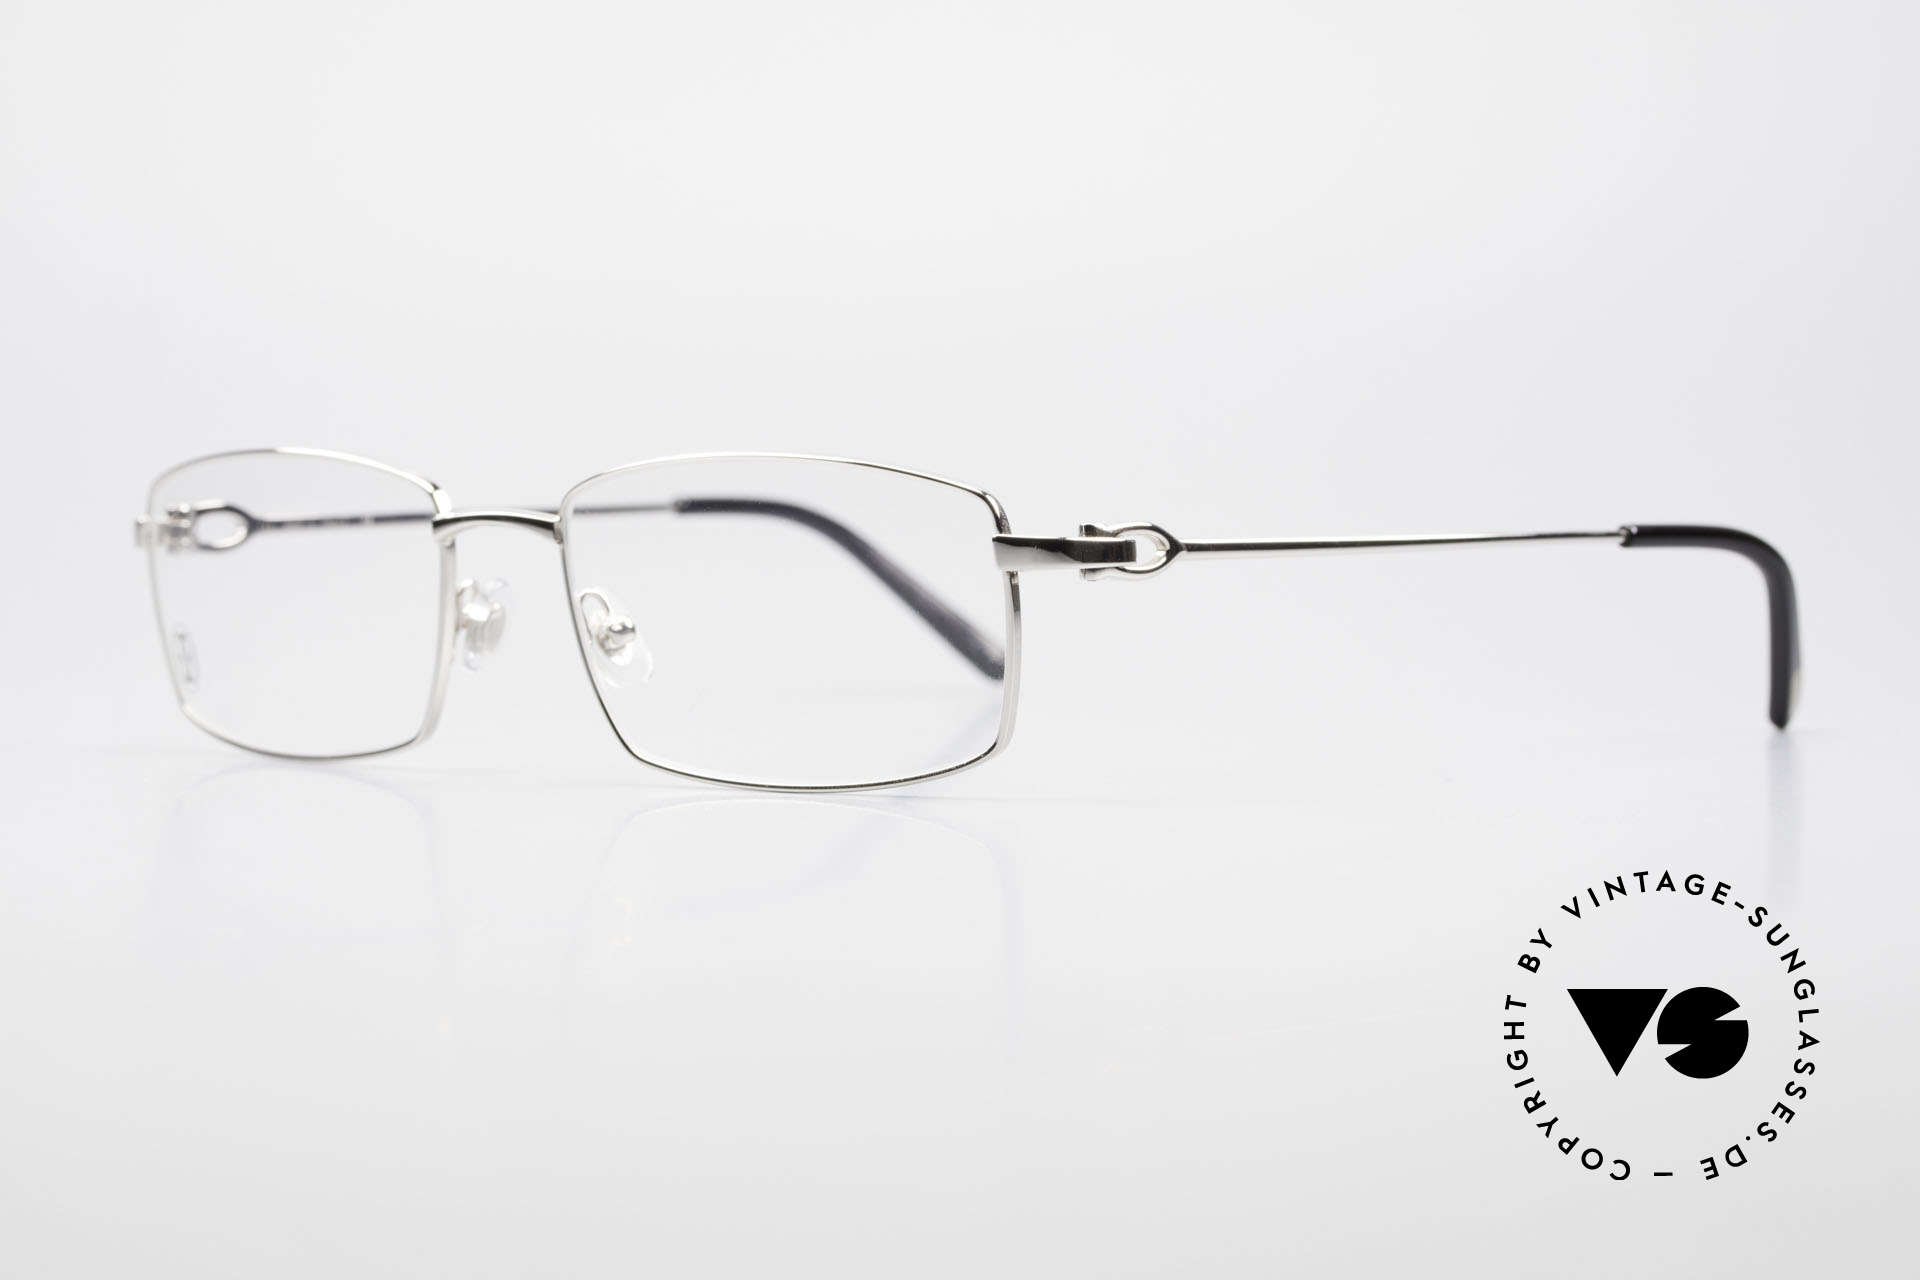 Cartier River - M Square Frame Luxury Platinum, costly 'Platine Edition' (frame with platinum finish), Made for Men